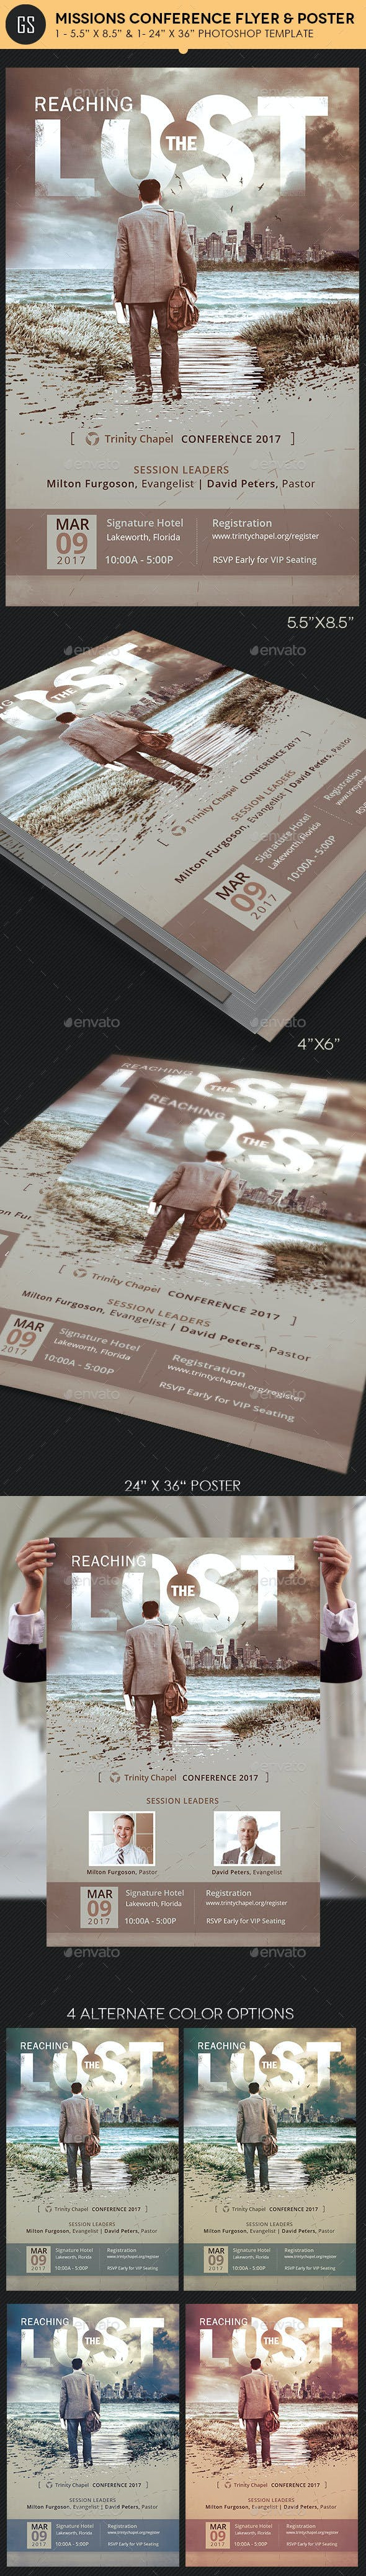 missions conference flyer poster template by godserv graphicriver